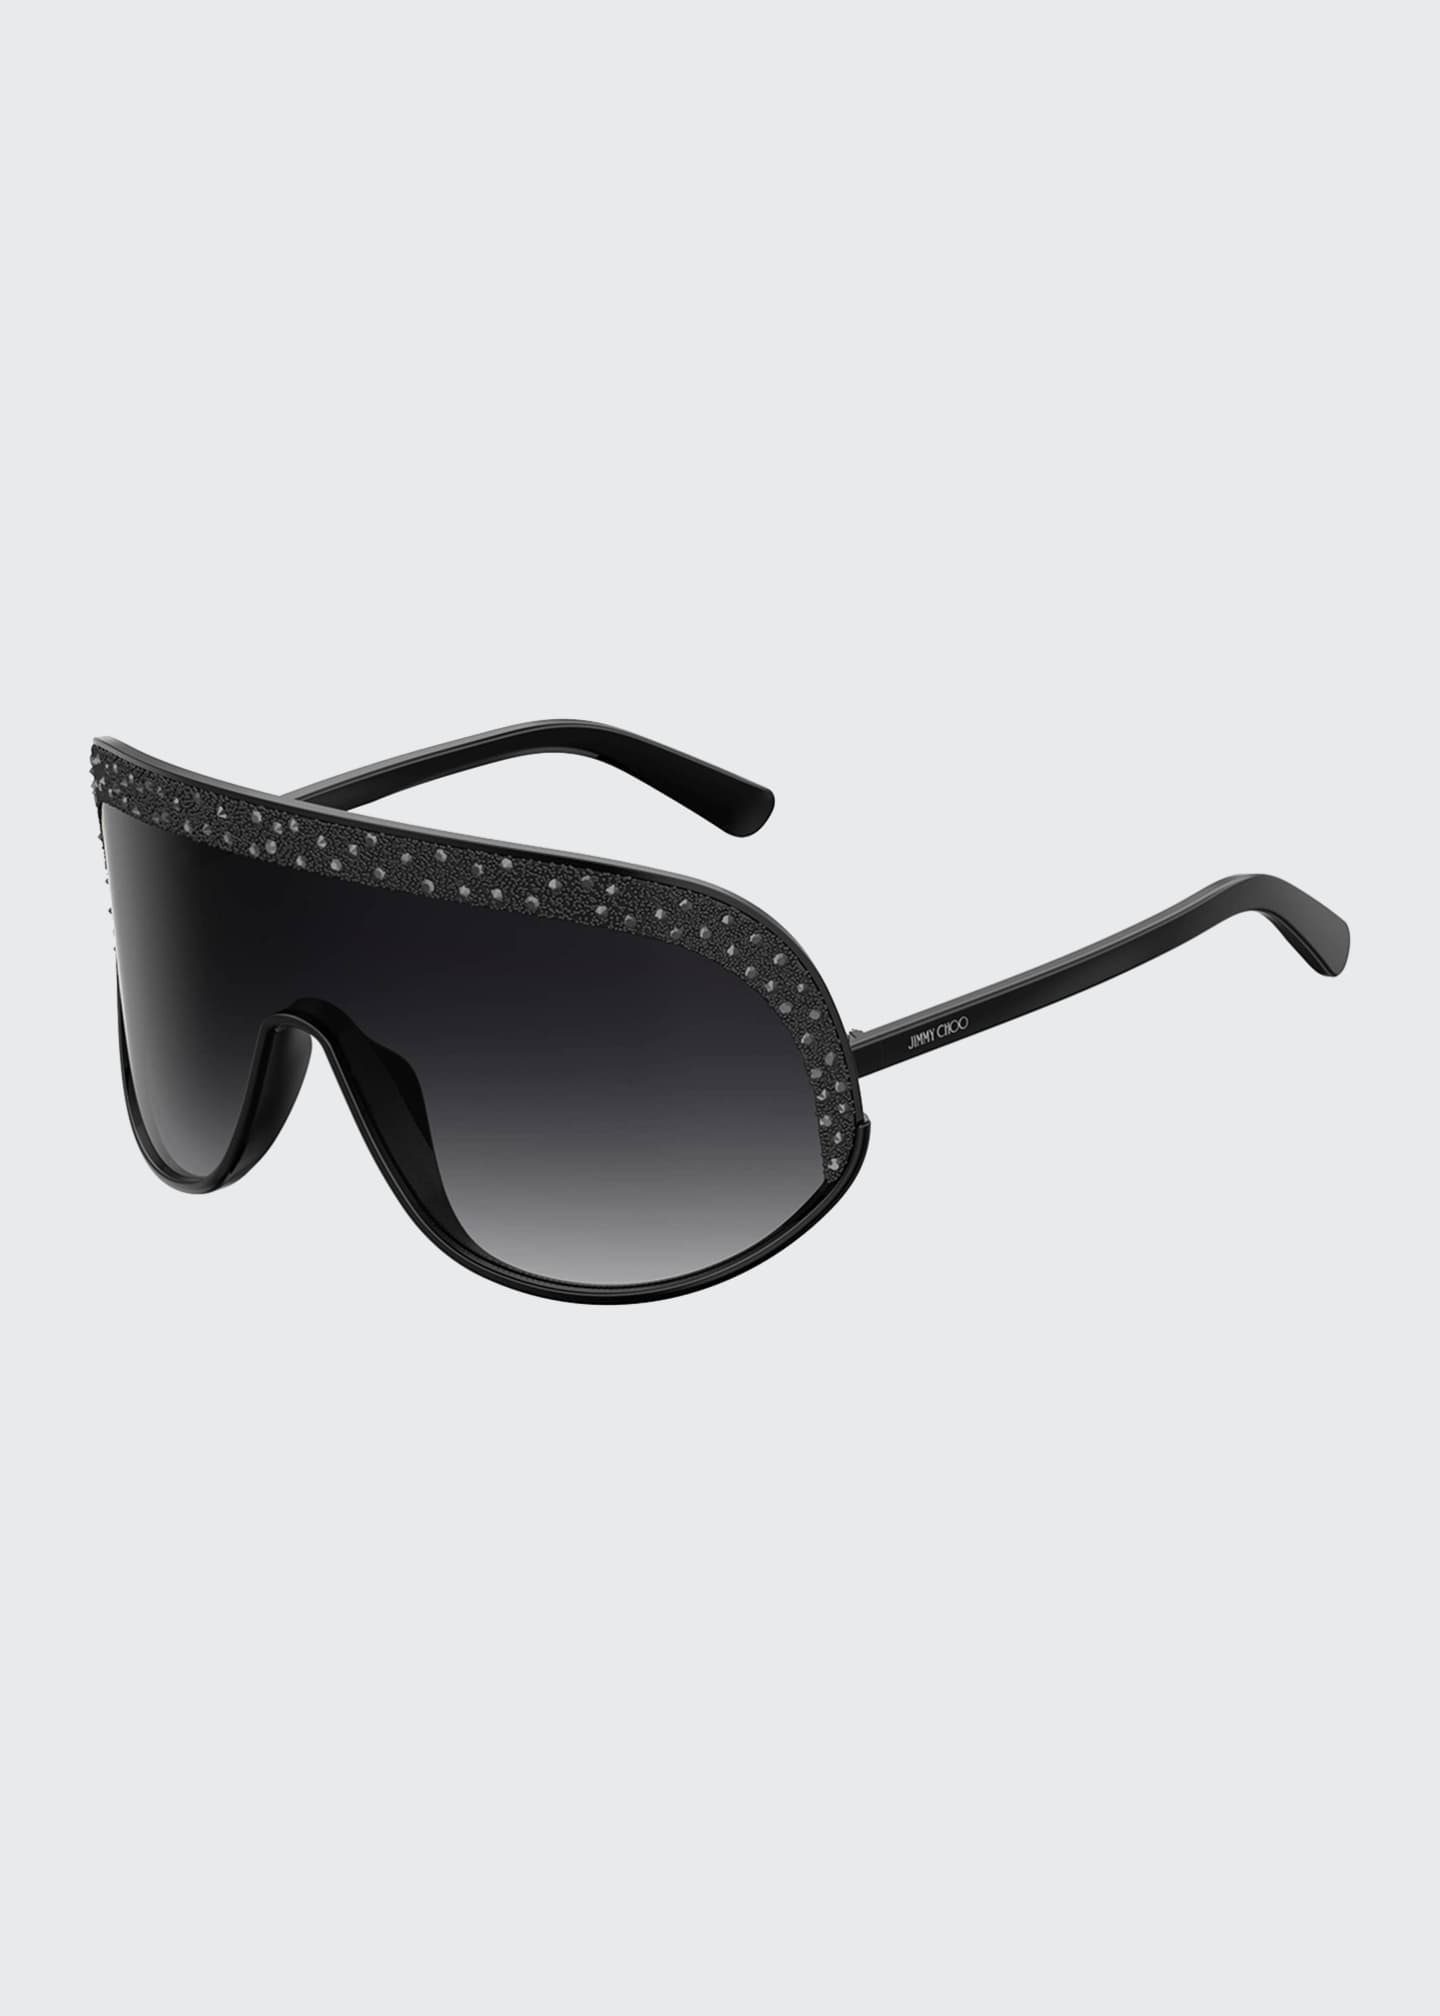 Jimmy Choo Siryns Wrap Shield Sunglasses w/ Crystal